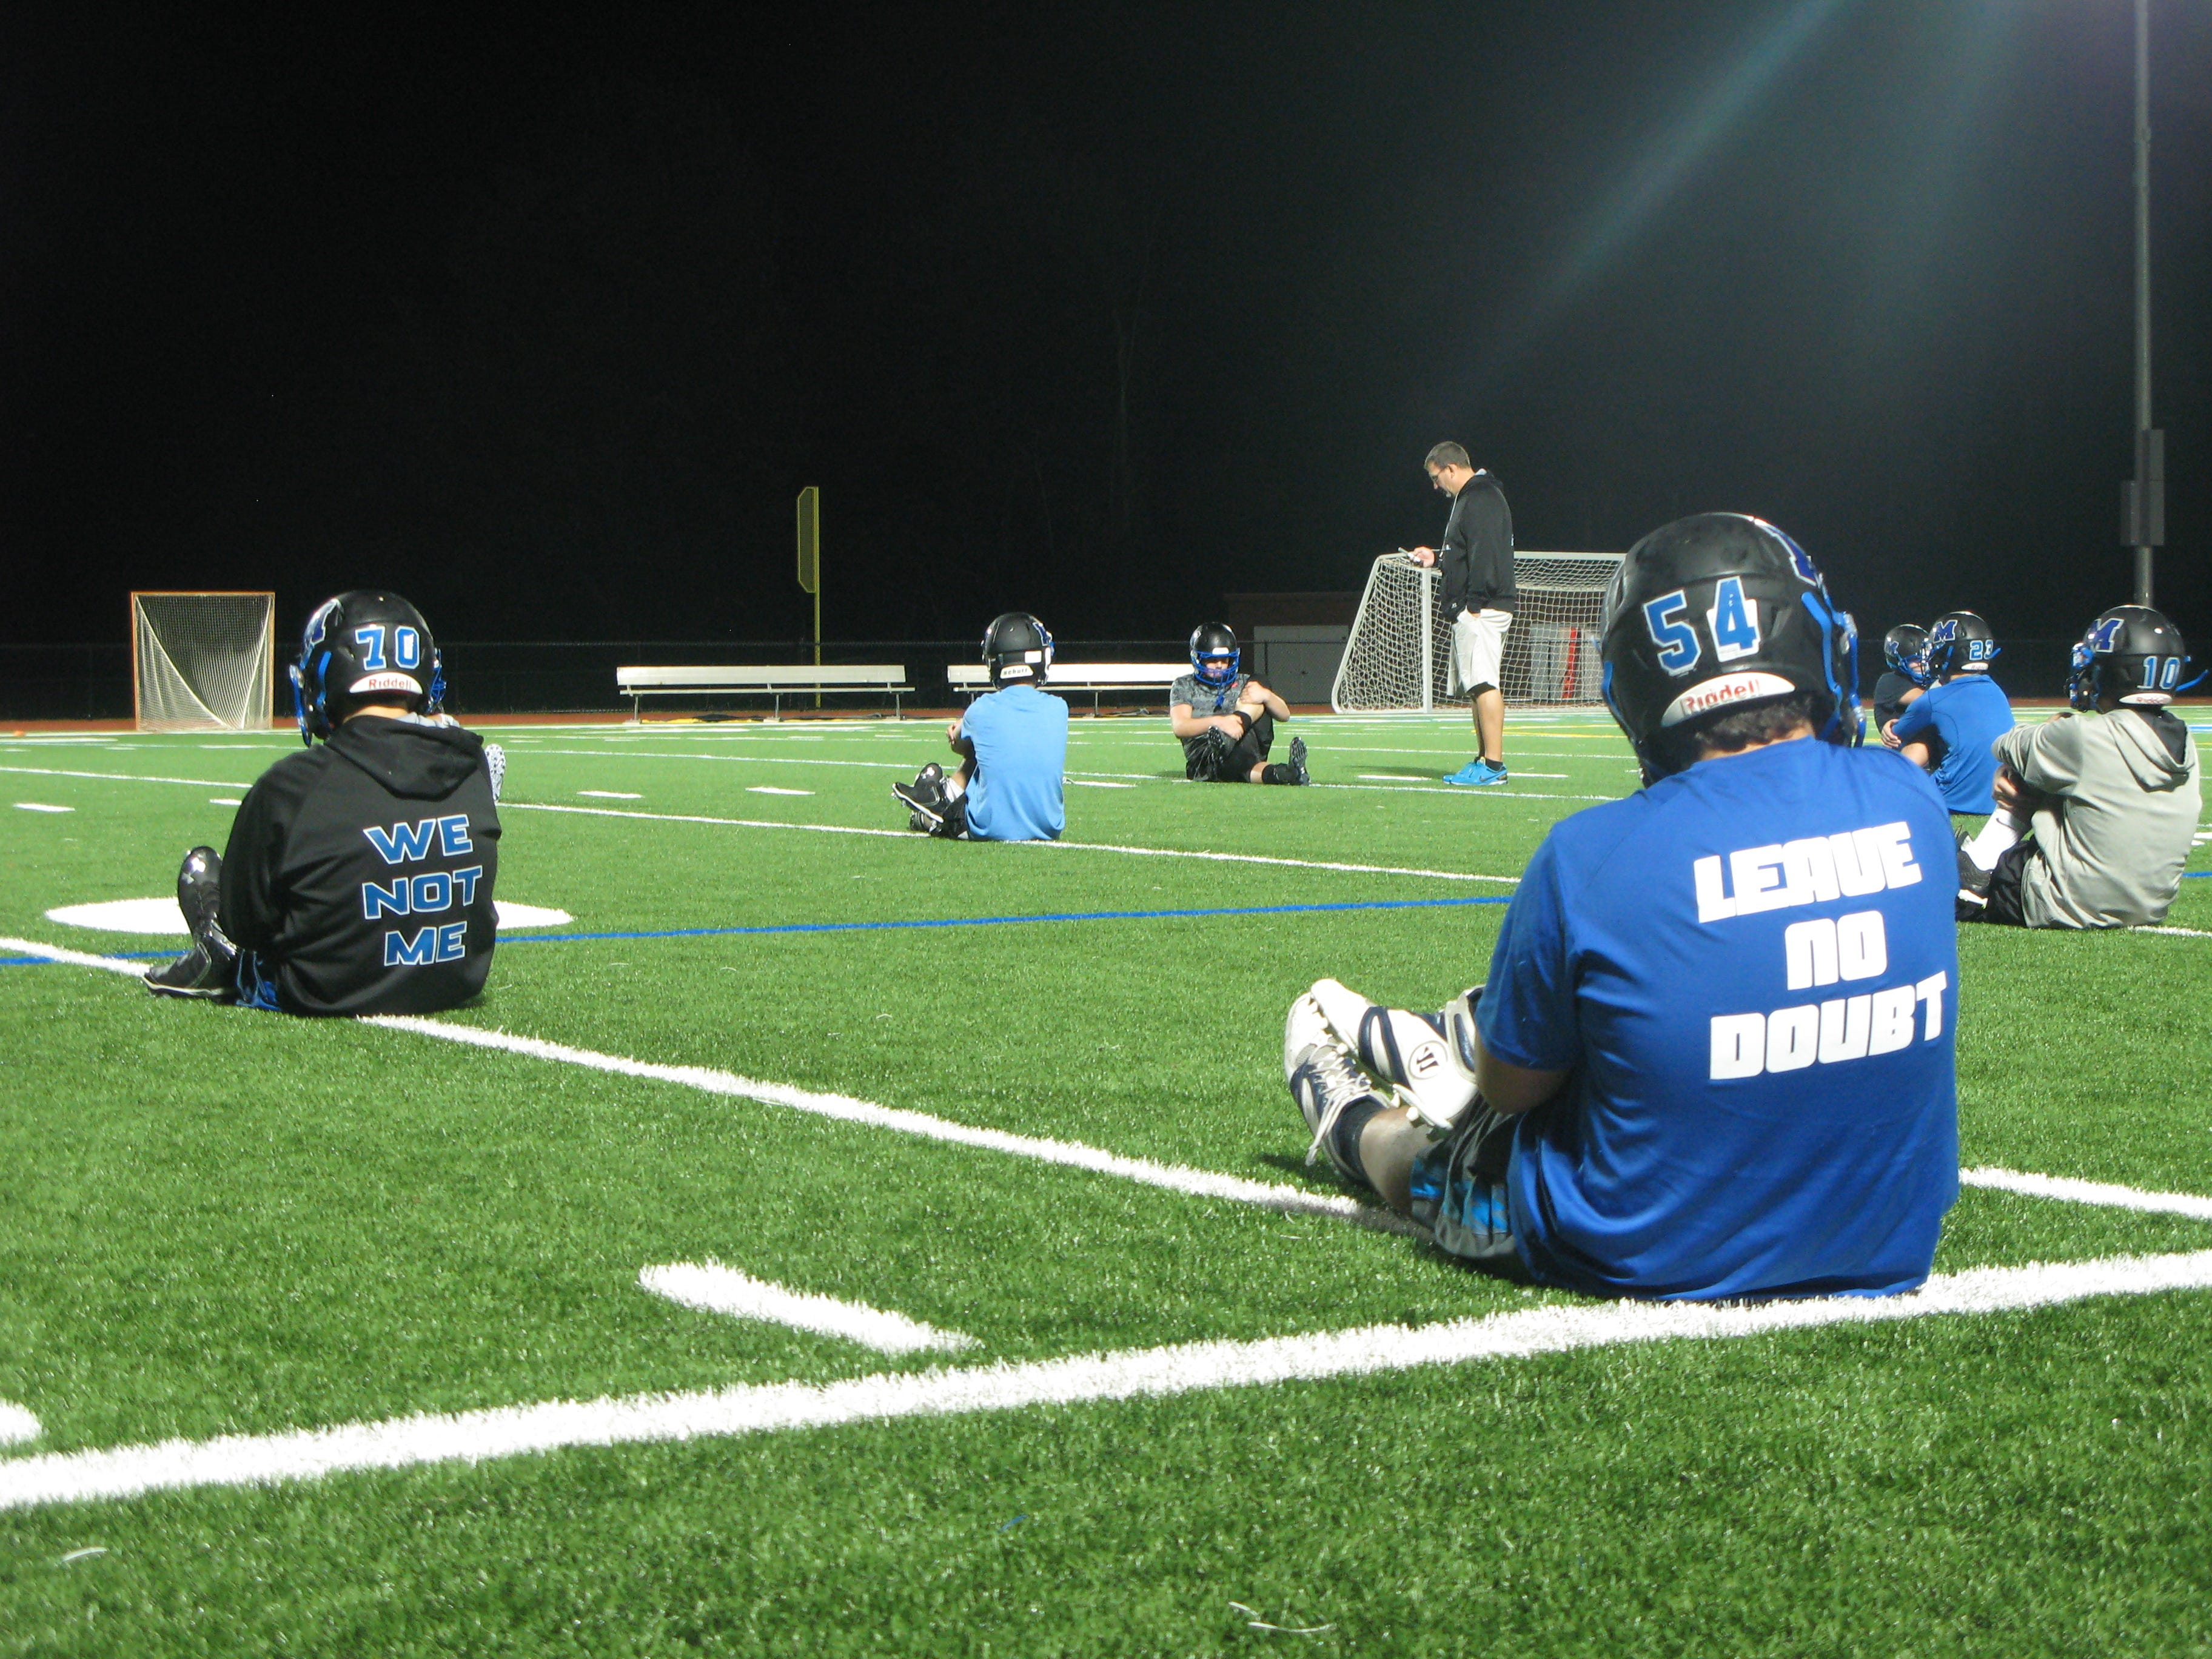 """The Millbrook High School football team, wearing team gear with phrases like """"We Not Me"""" and """"Leave No Doubt"""" stretches before practice early Monday morning."""